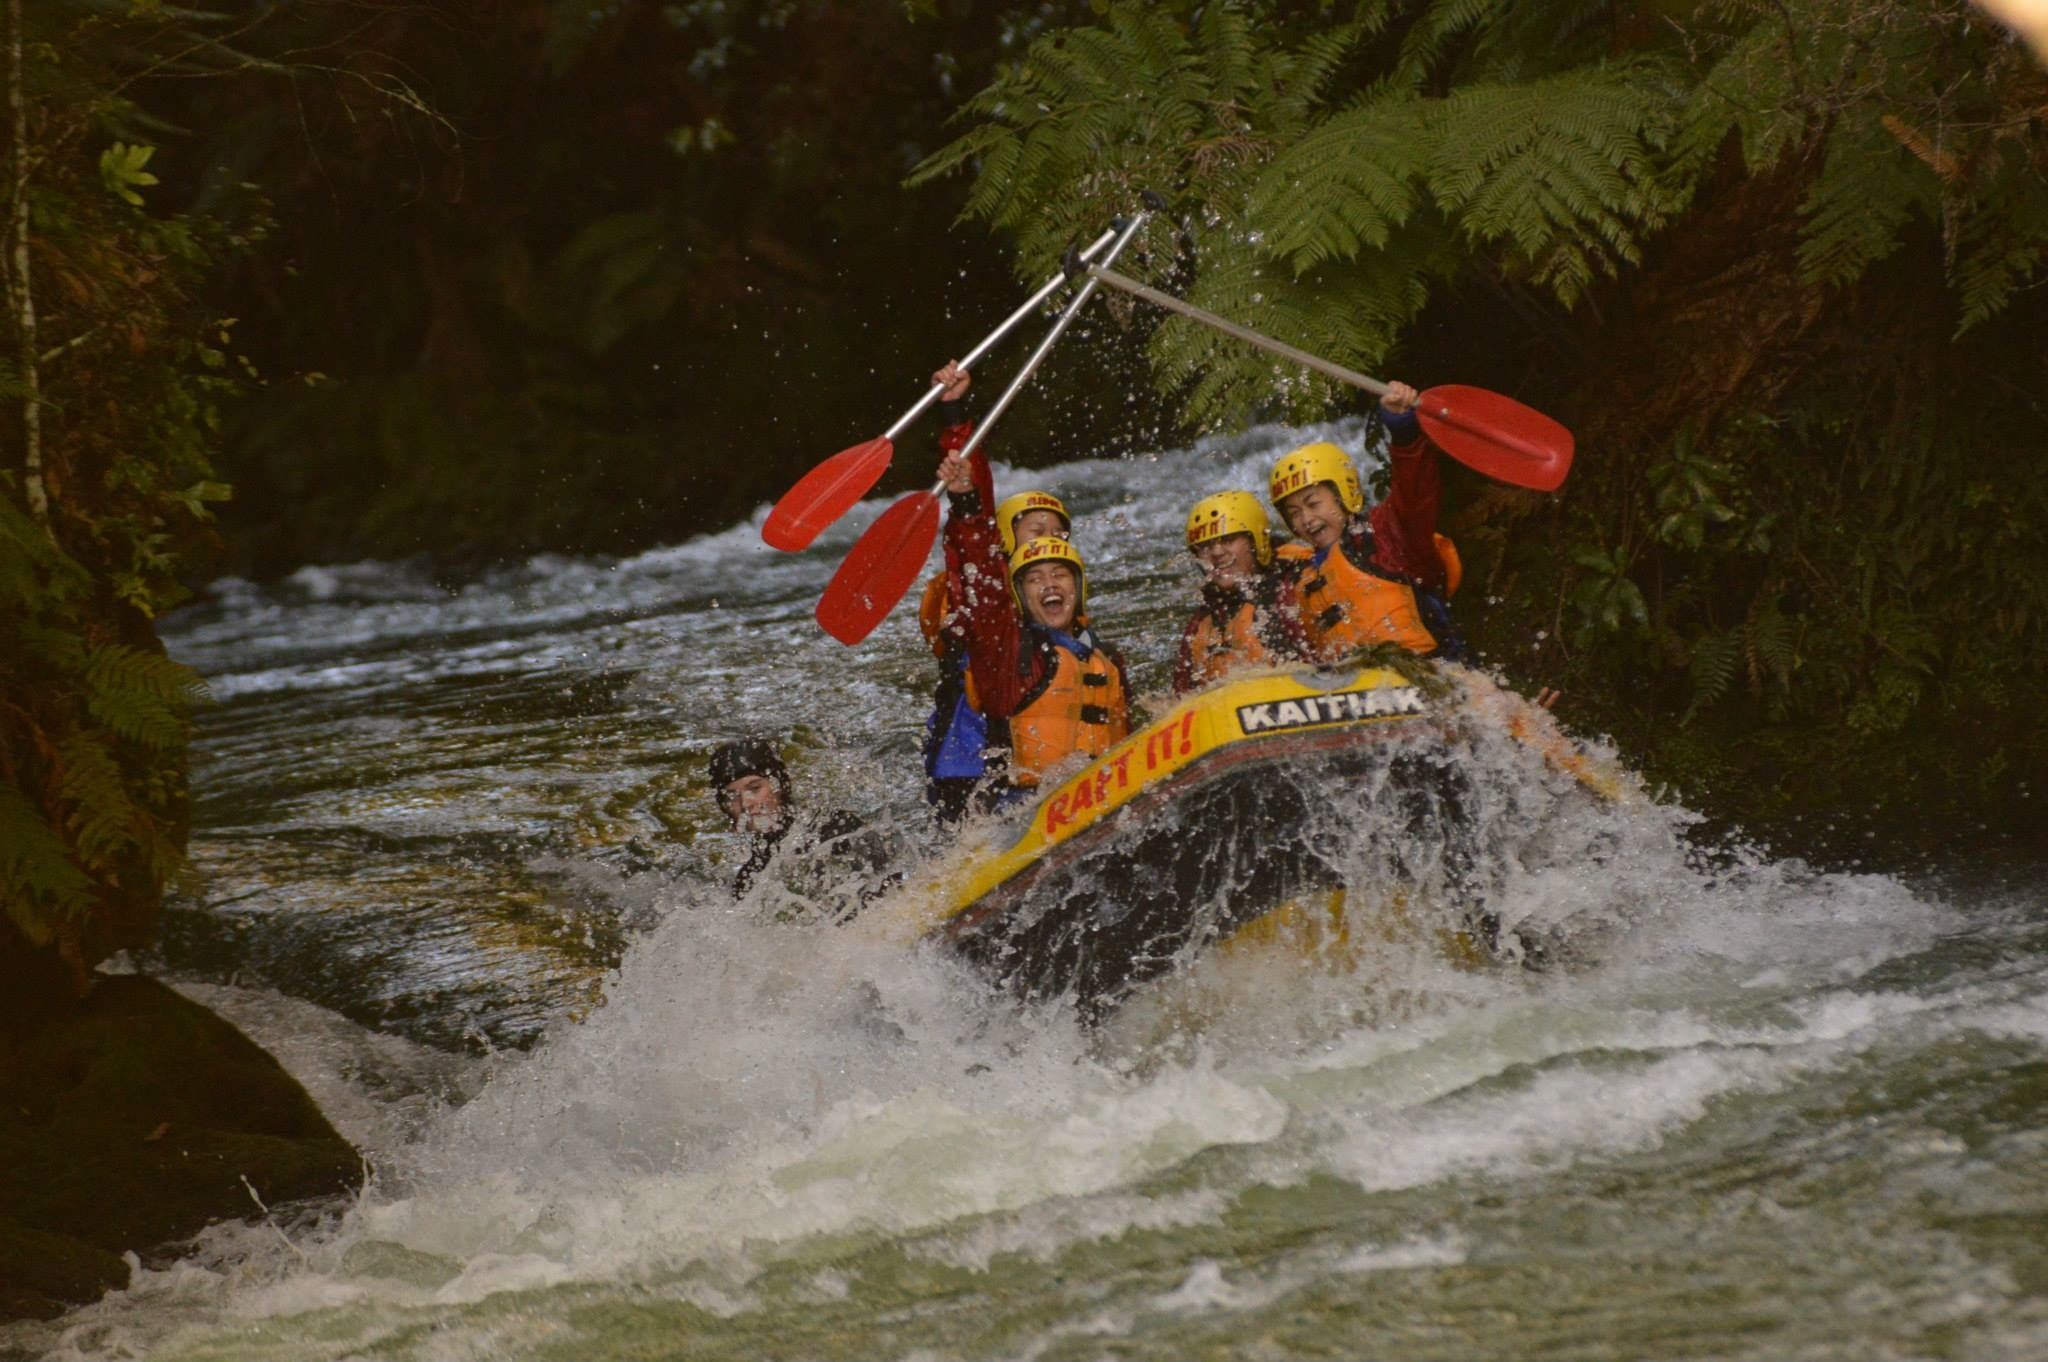 Some of New Zealand's most popular tourist activities are located outside the big cities, such as Kaitiaki White Water Rafting